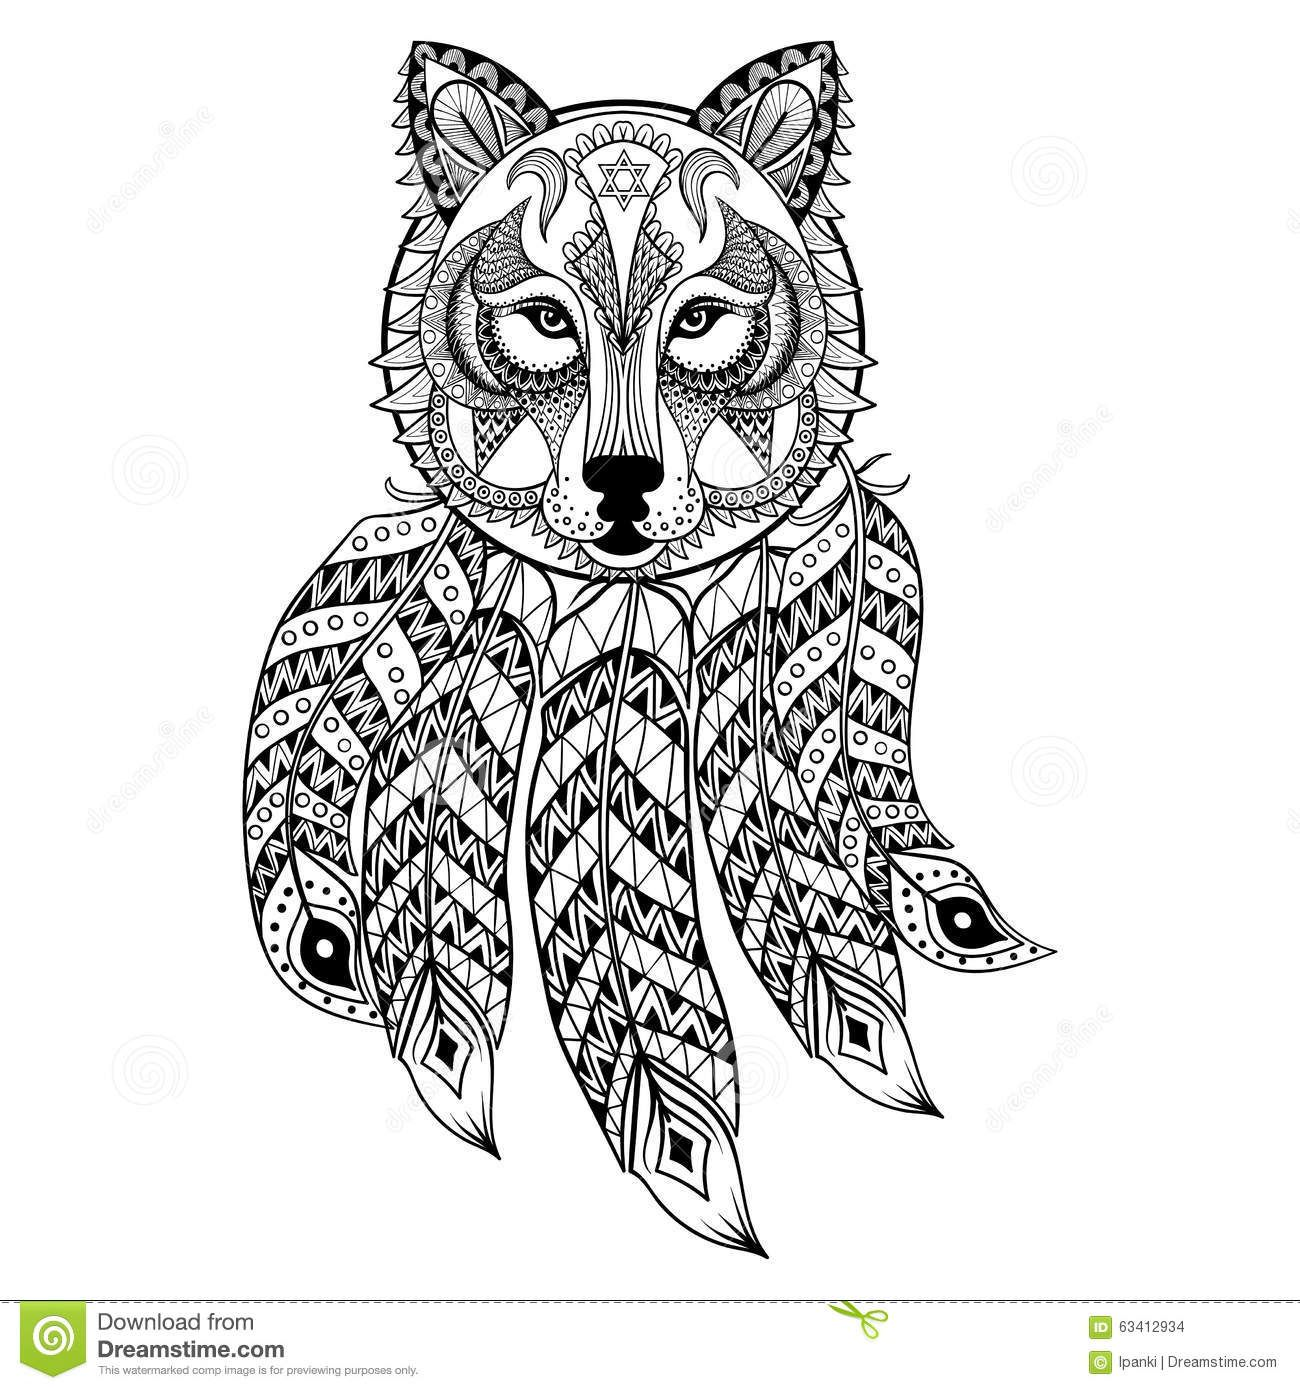 Tribal Coloring Pages Dream Catcher Coloring Pages To Download And Print For Free  58